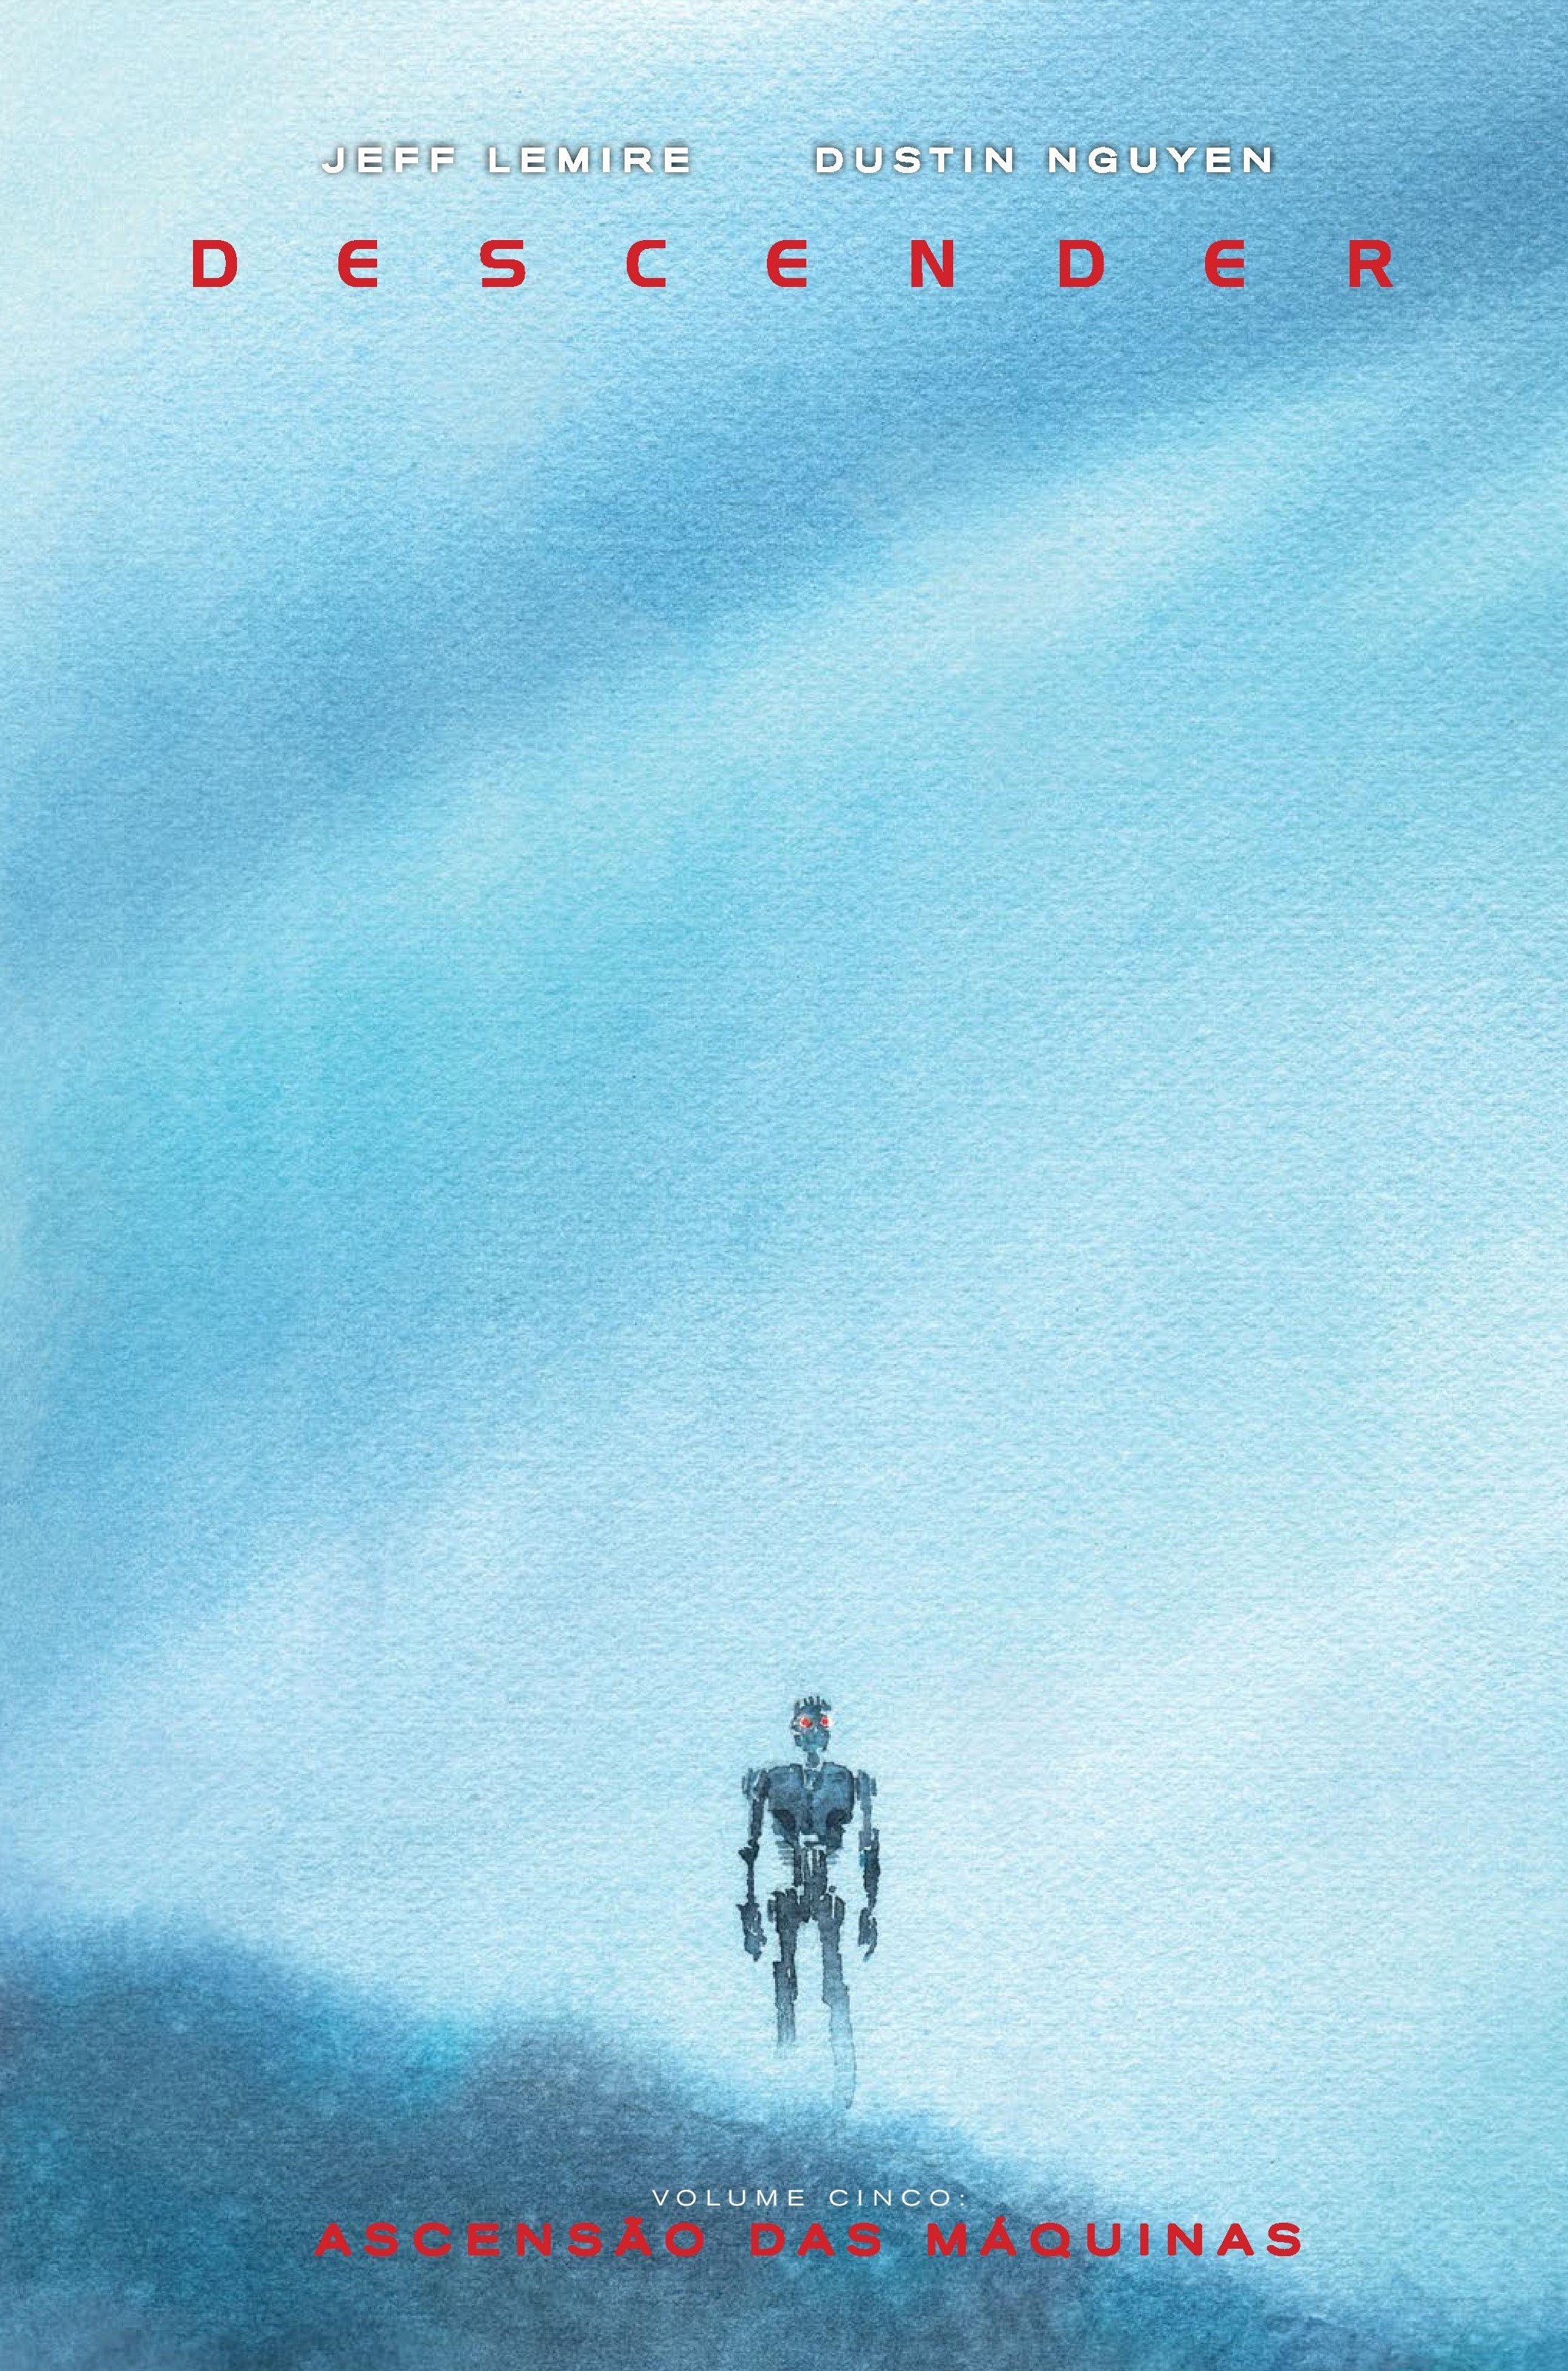 DESCENDER vol. 5: ASCENSÃO DAS MÁQUINAS